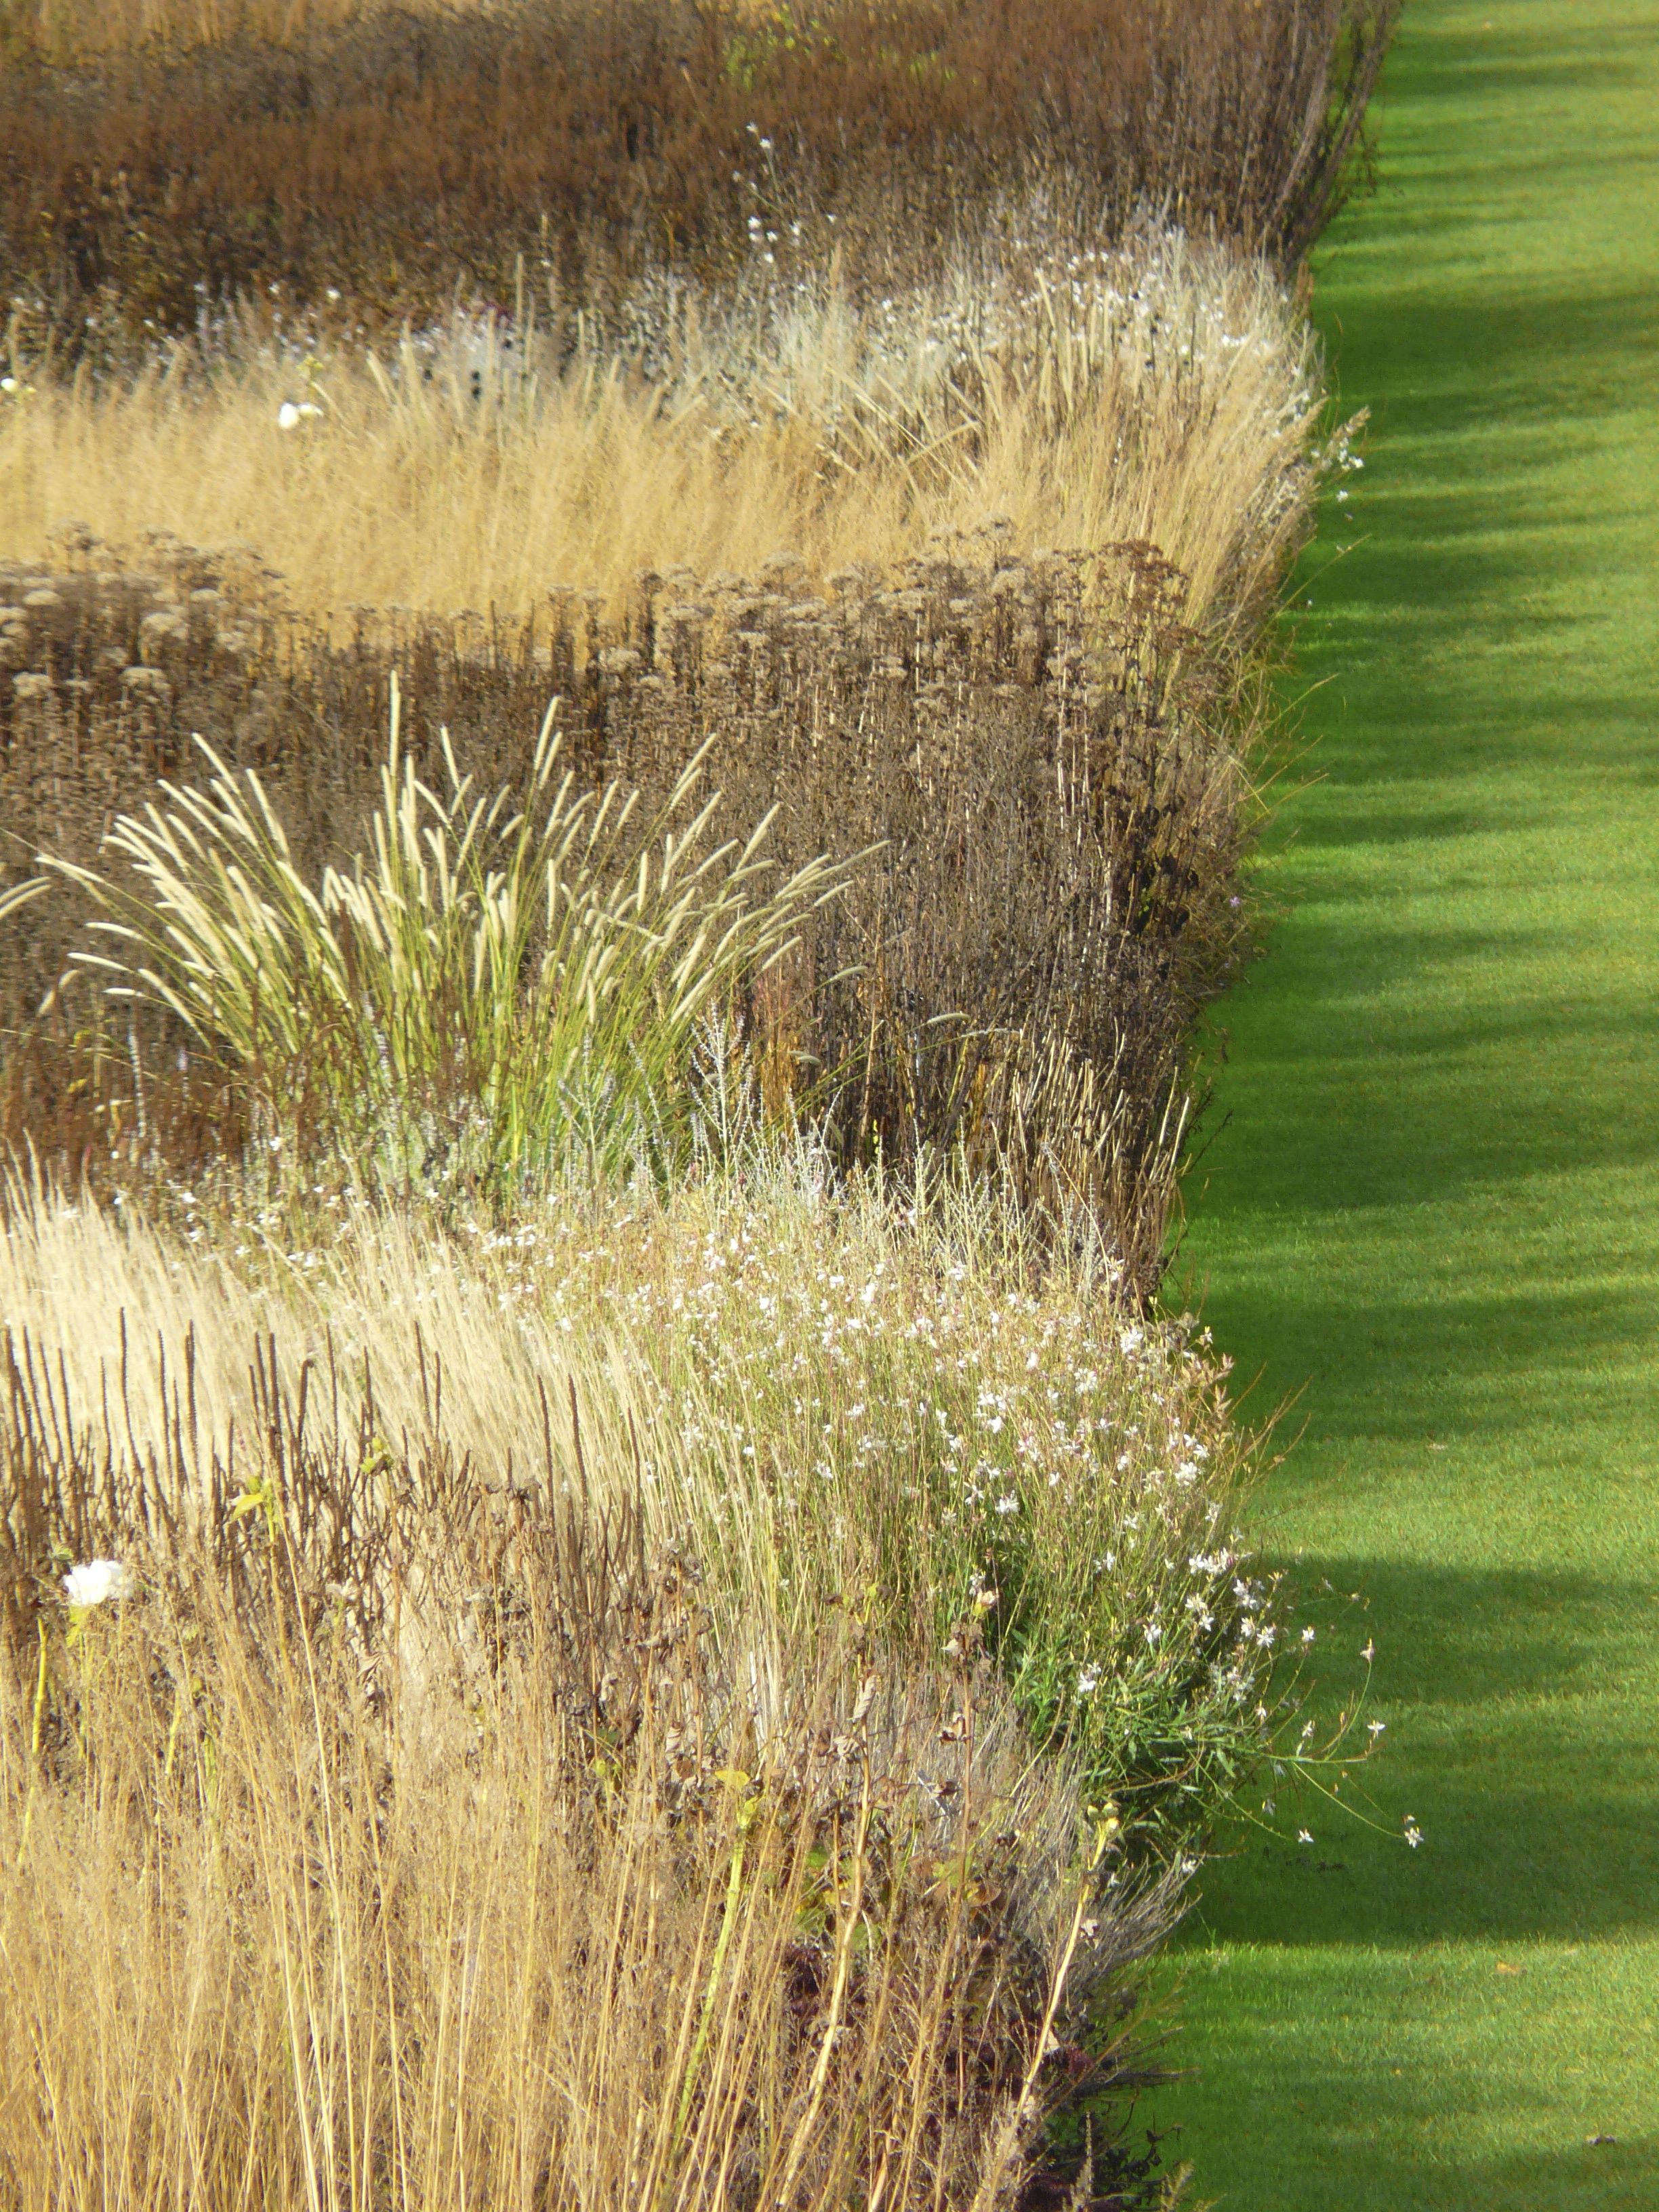 Rhs gardens at wisley featuring the double piet oudolf borders rhs gardens at wisley featuring the double piet oudolf borders i love the contrast of very neat lawn with flowing grasses workwithnaturefo